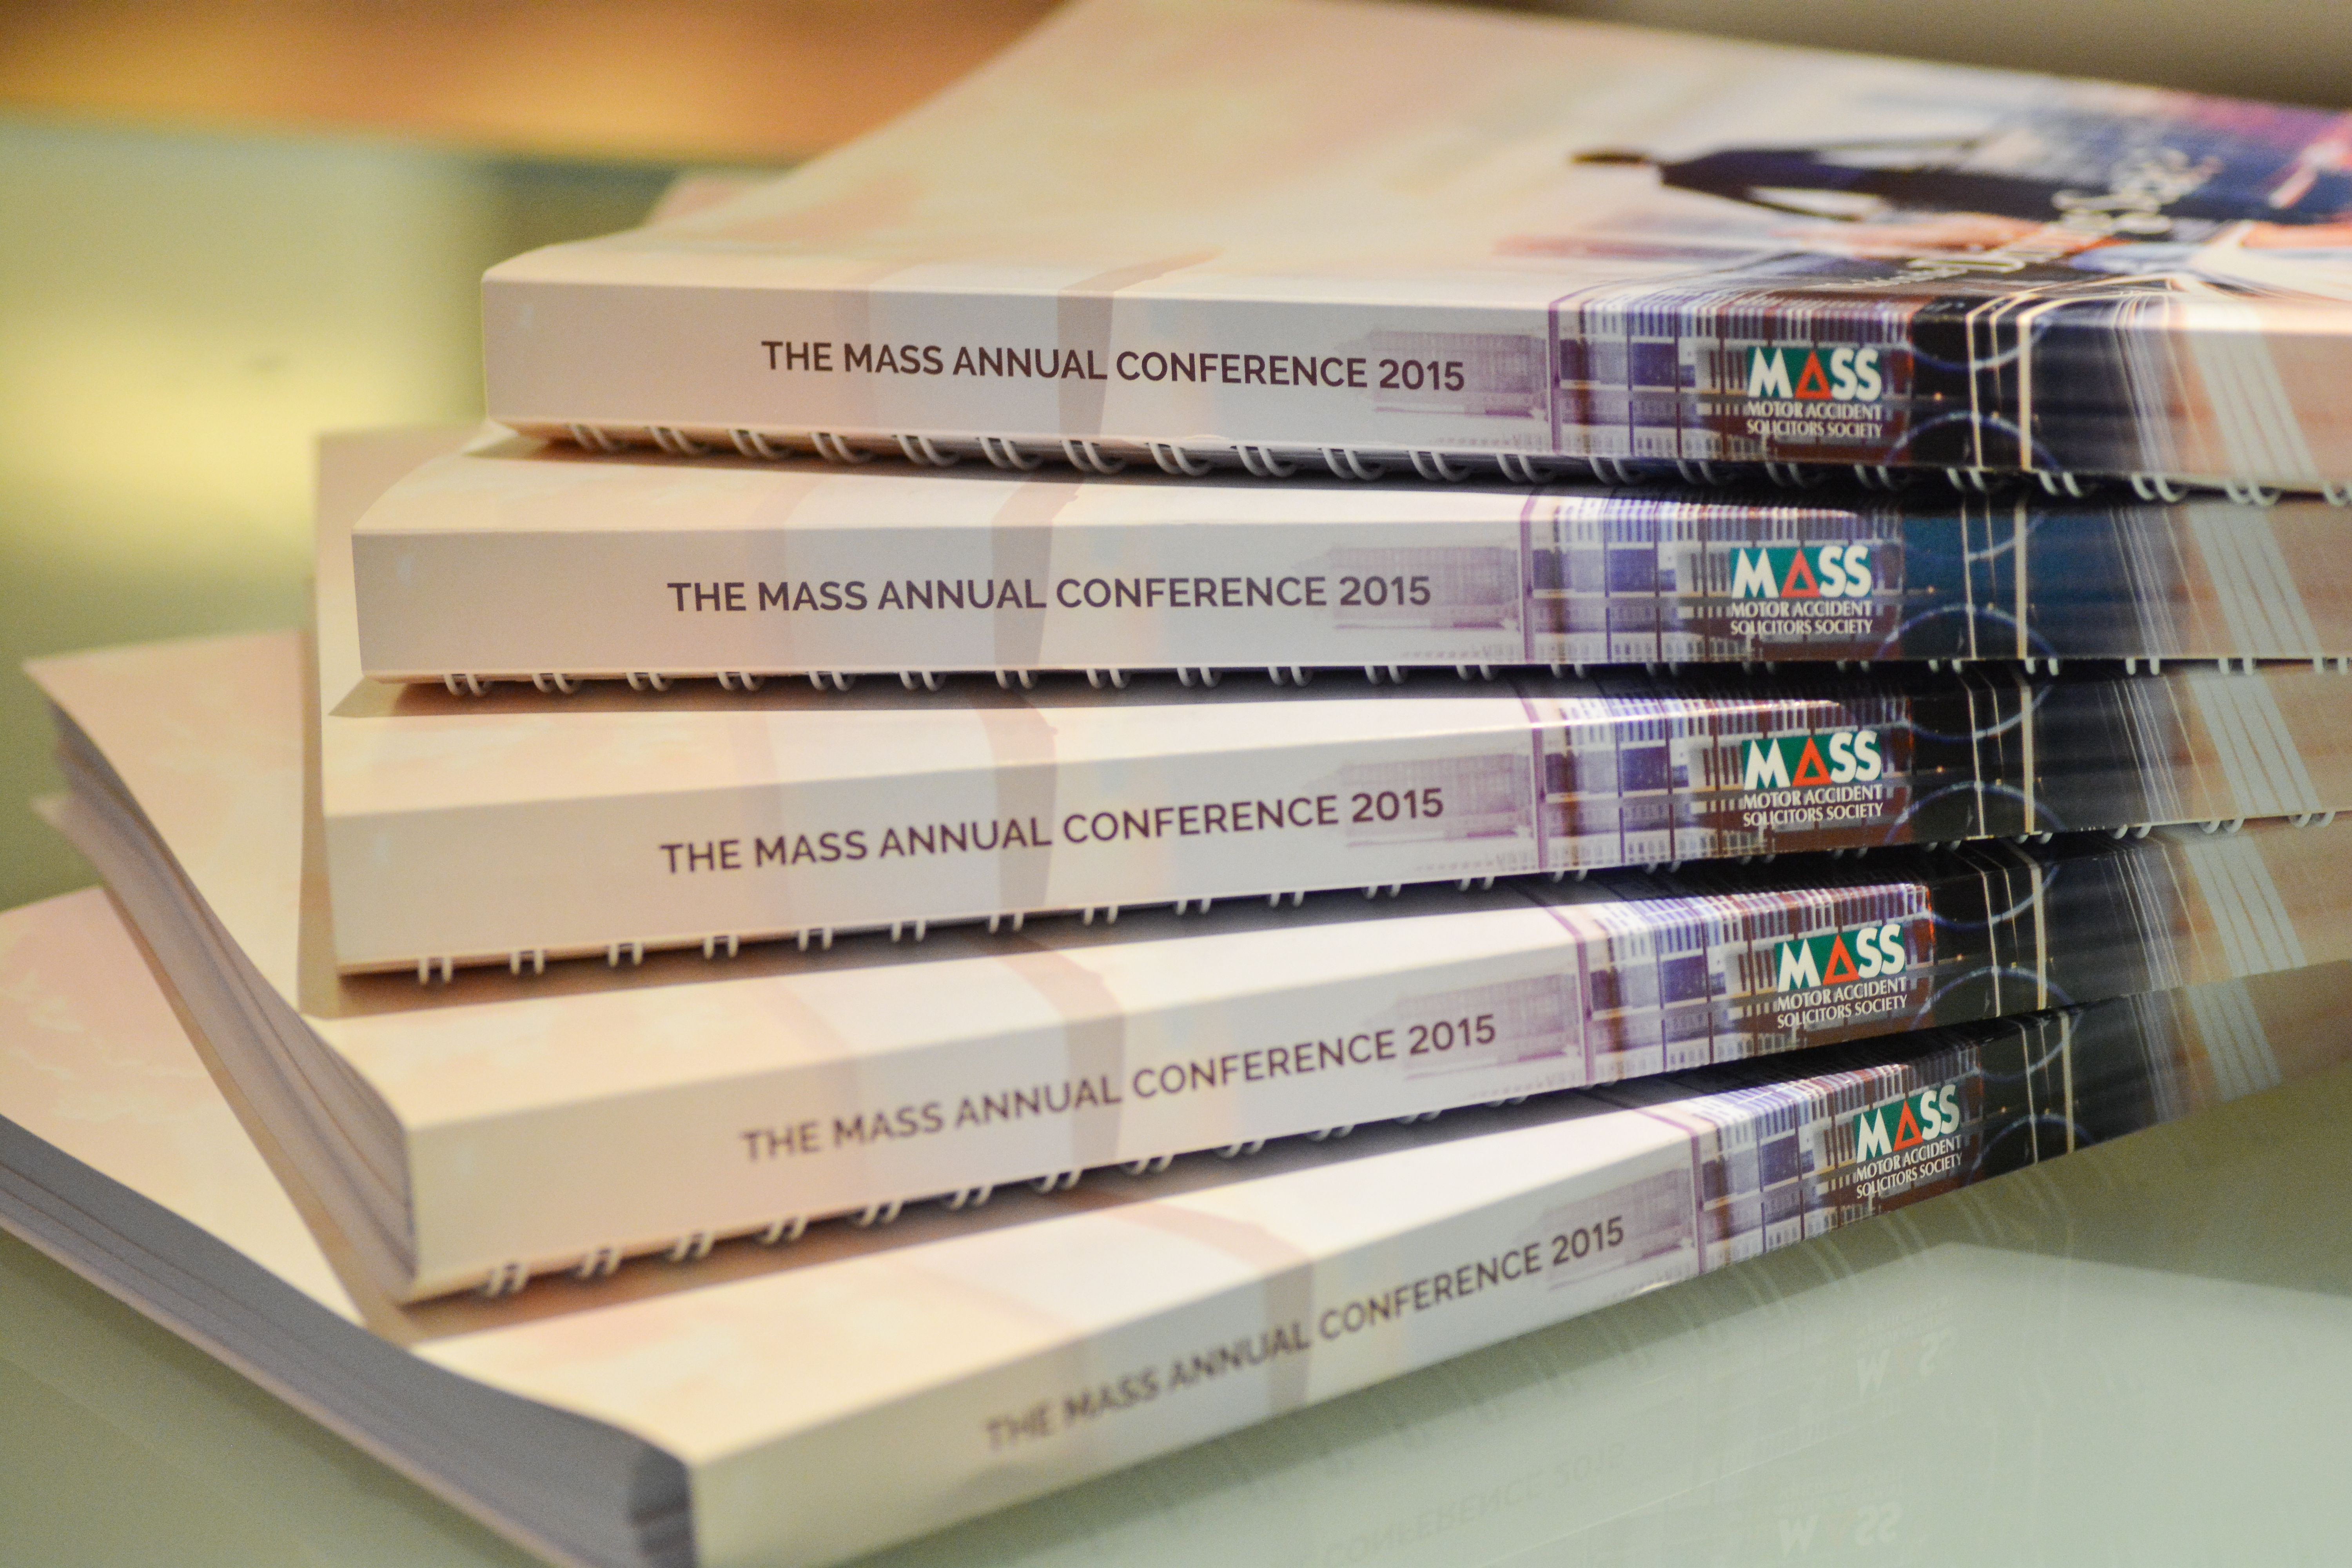 Previous MASS Conferences & Associated Events